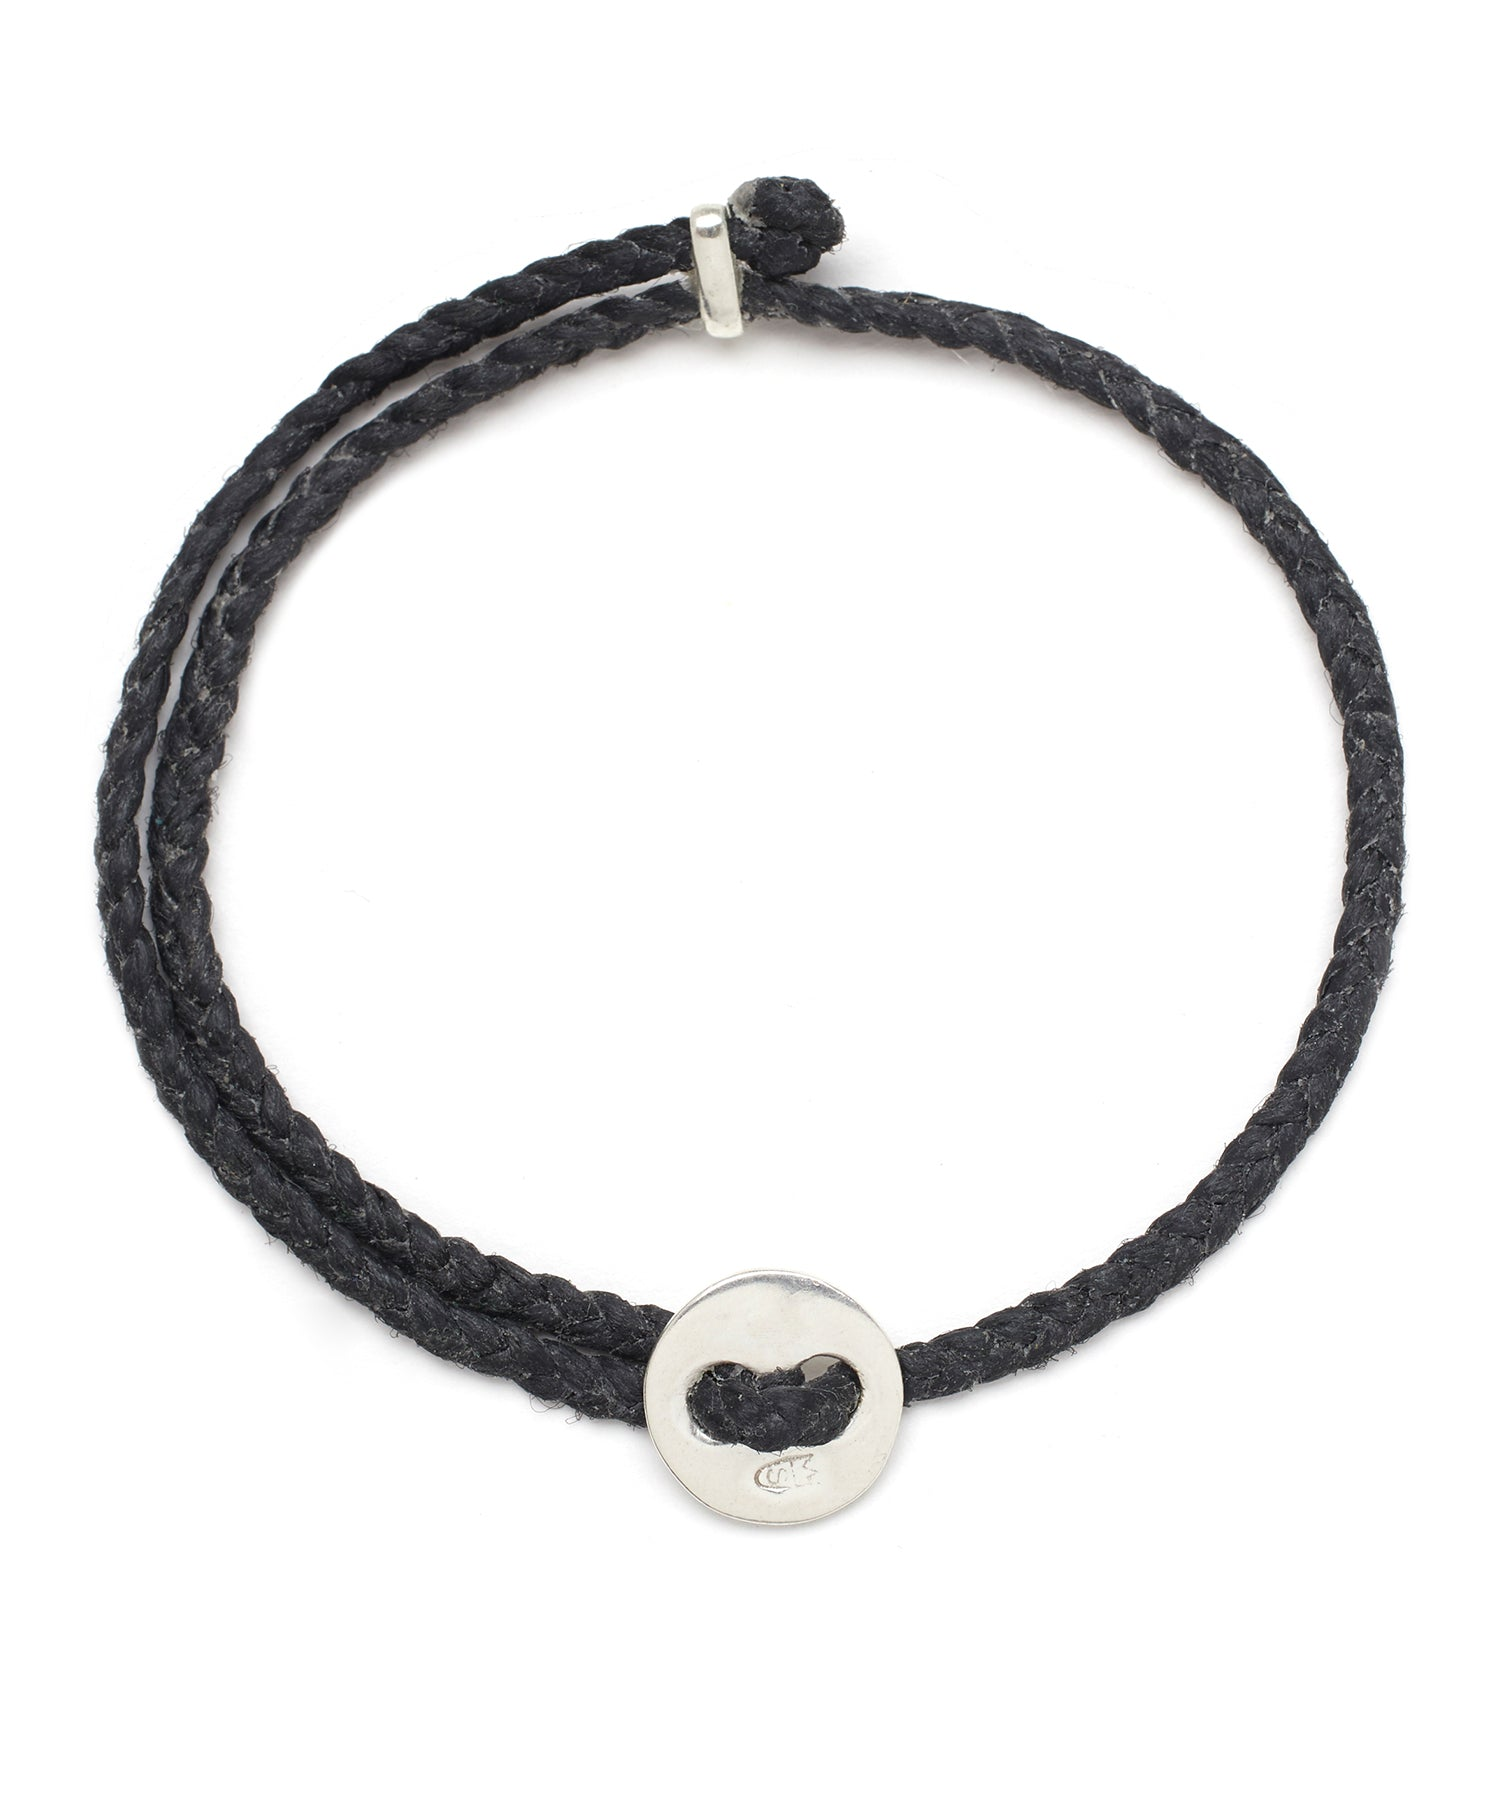 Scosha Signature 4MM Bracelet in Black